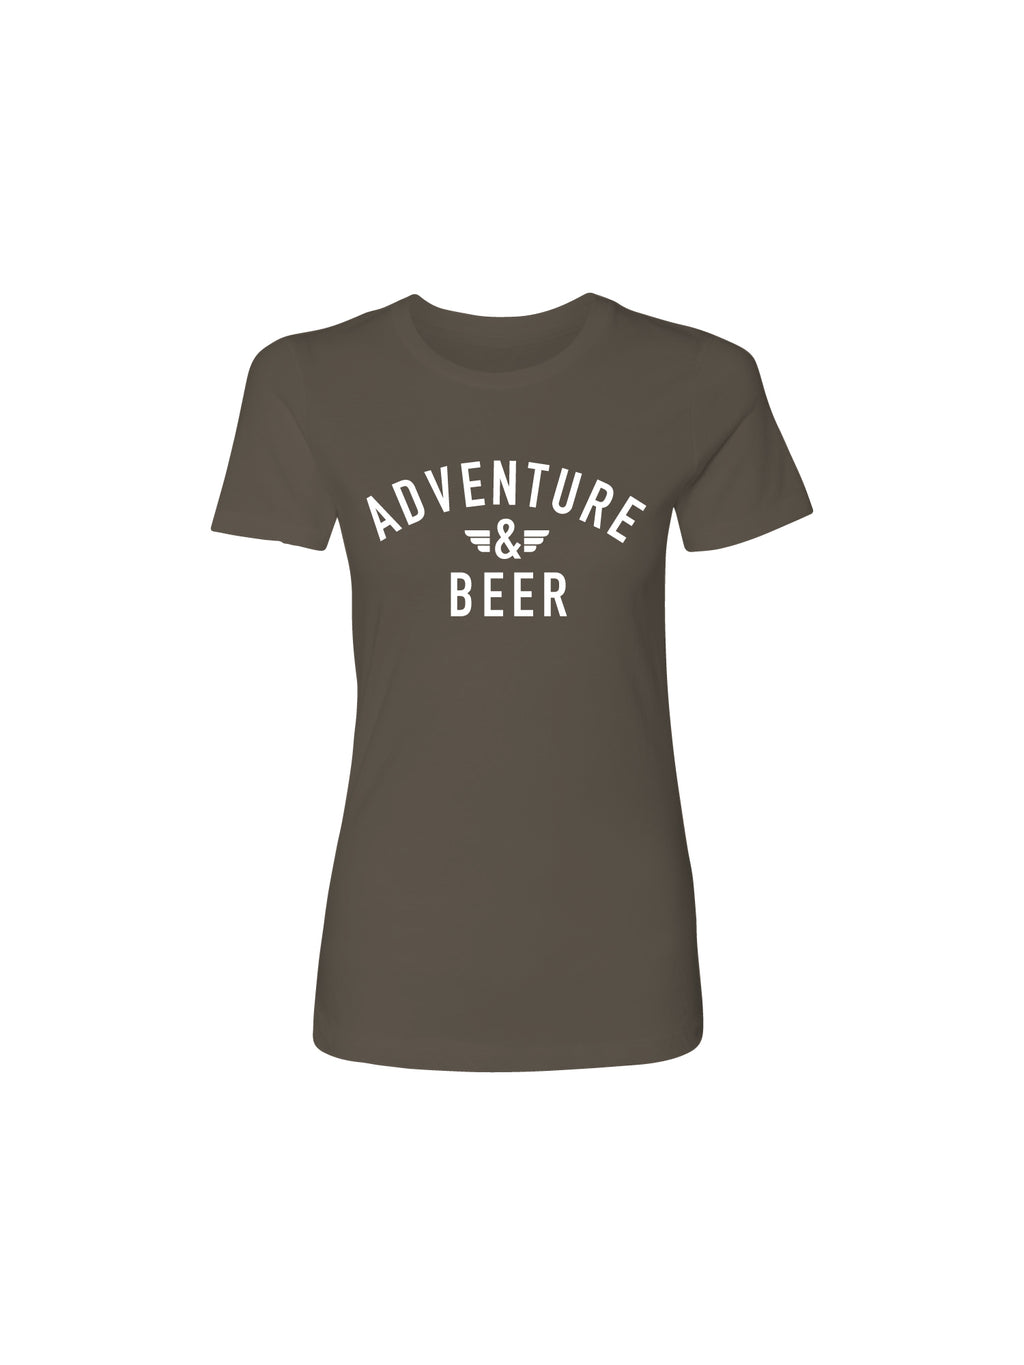 ADVENTURE AND BEER WOMEN TEE- BROWN - Anderson Bros Design and Supply